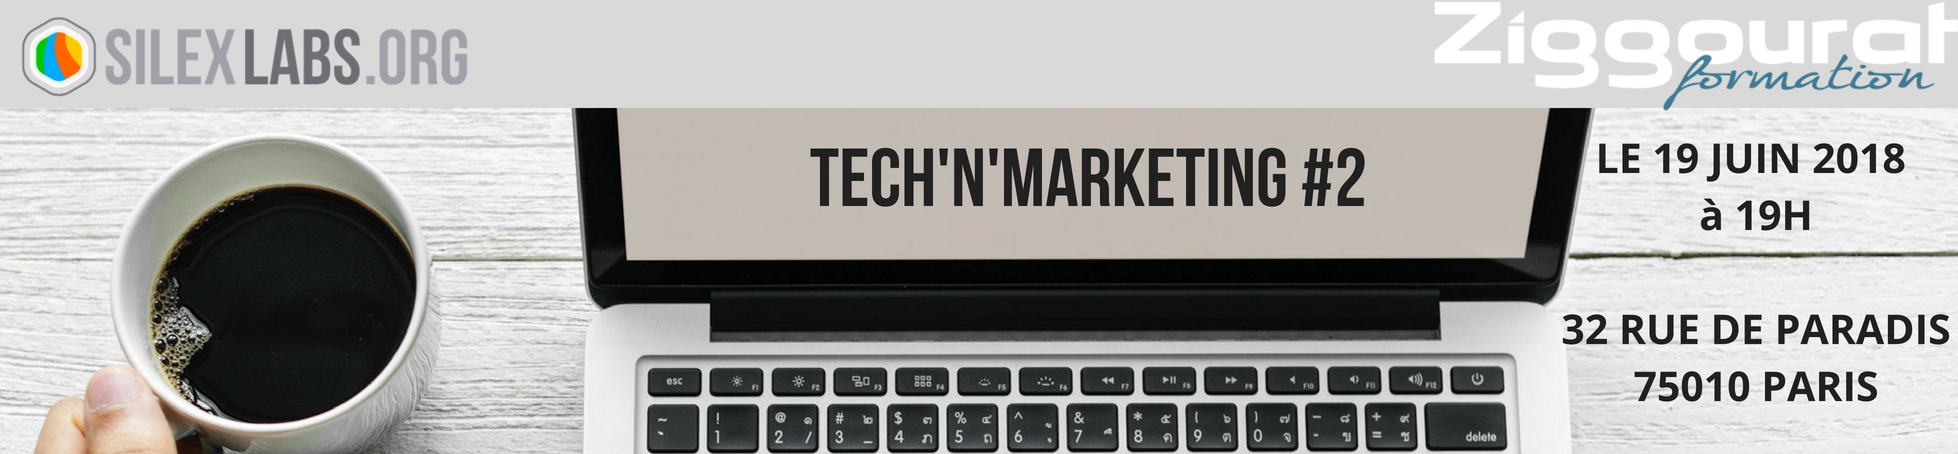 technmarketing-2-1